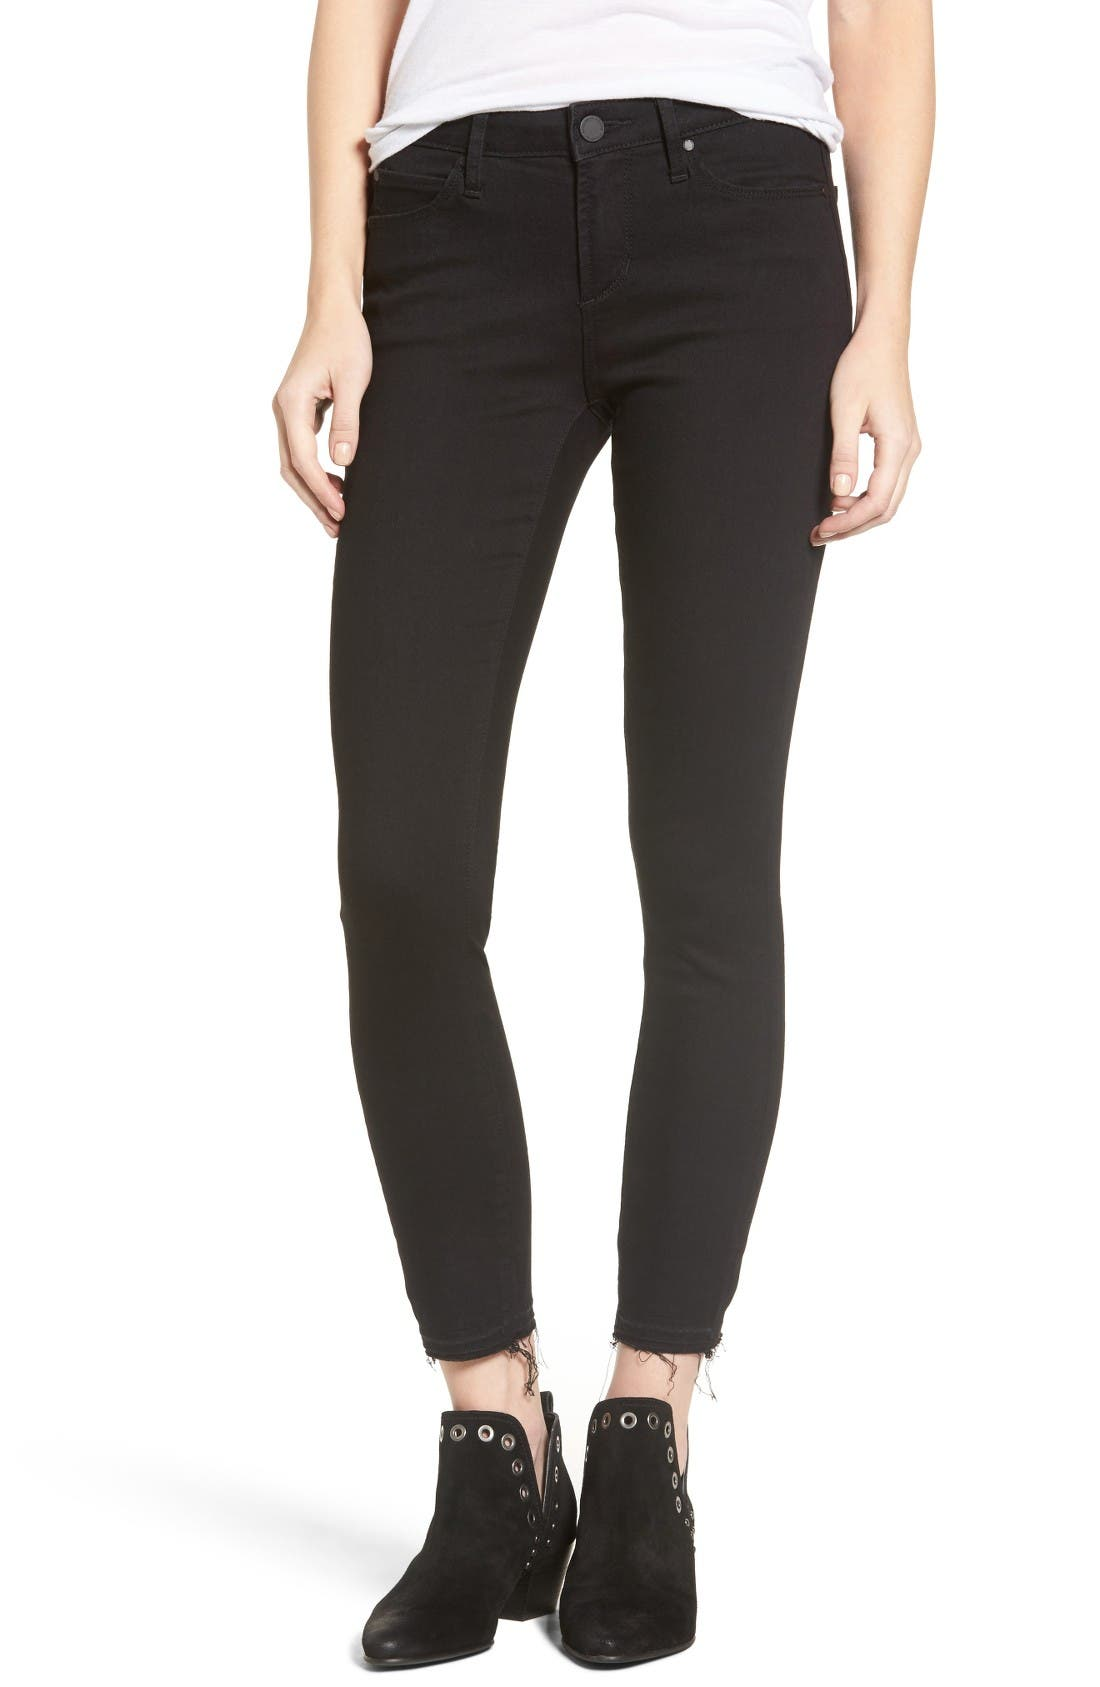 Carly Crop Skinny Jeans,                             Main thumbnail 1, color,                             Dunlop